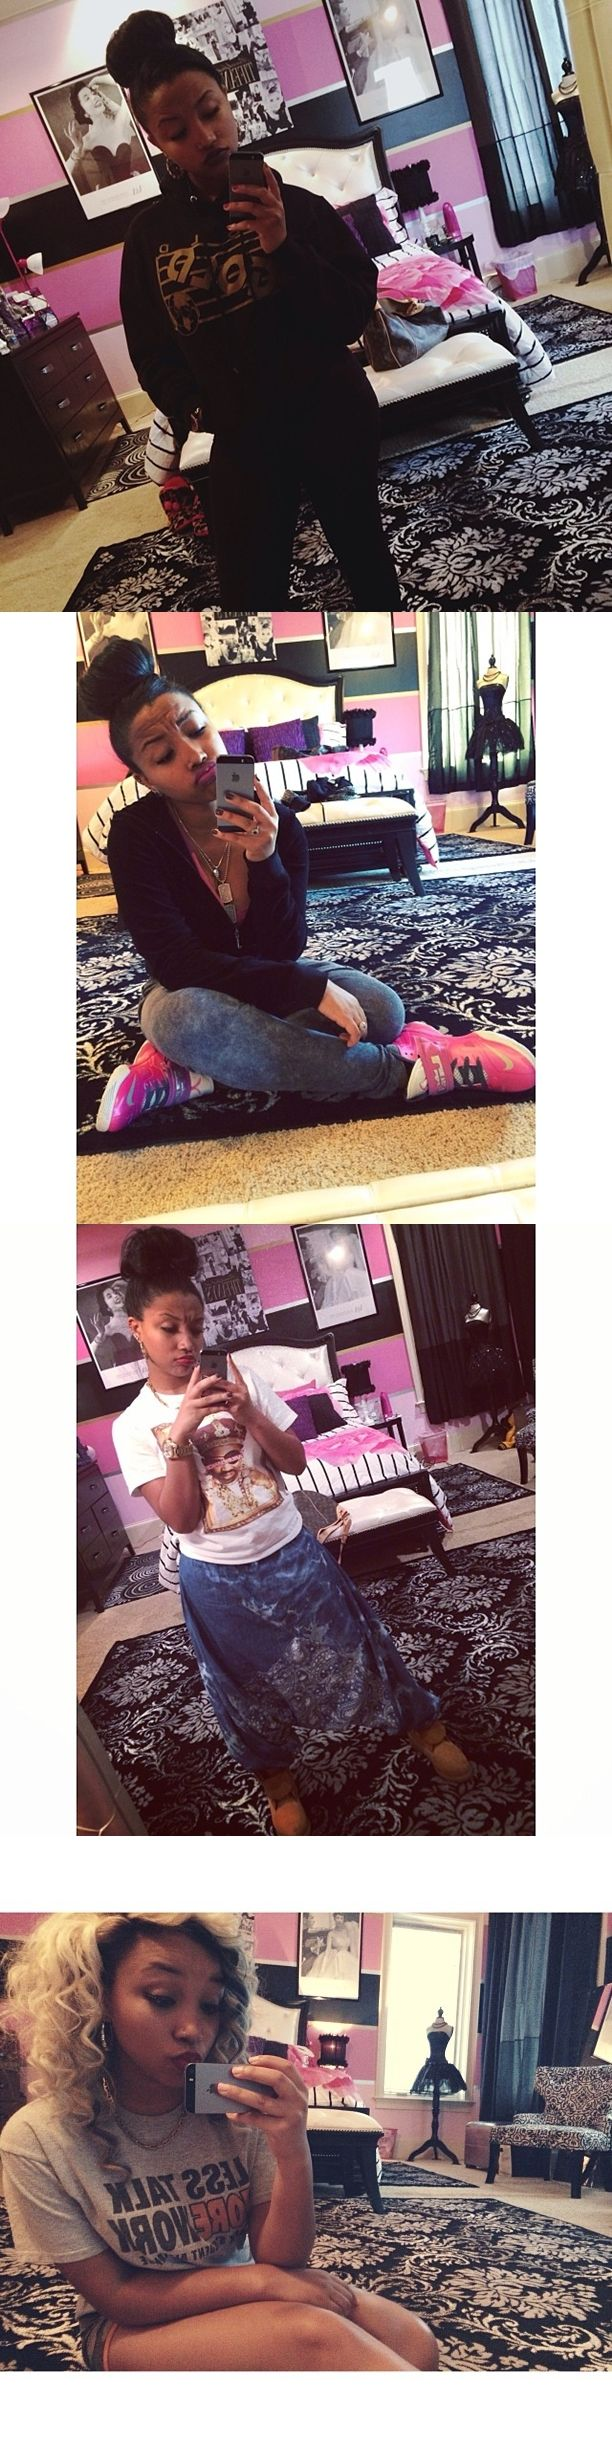 Zonnique Pullins Room - Super cute - OMG Girlz - T.I and Tiny's Daughter - Teen Bedroom - Chic - Young Adult